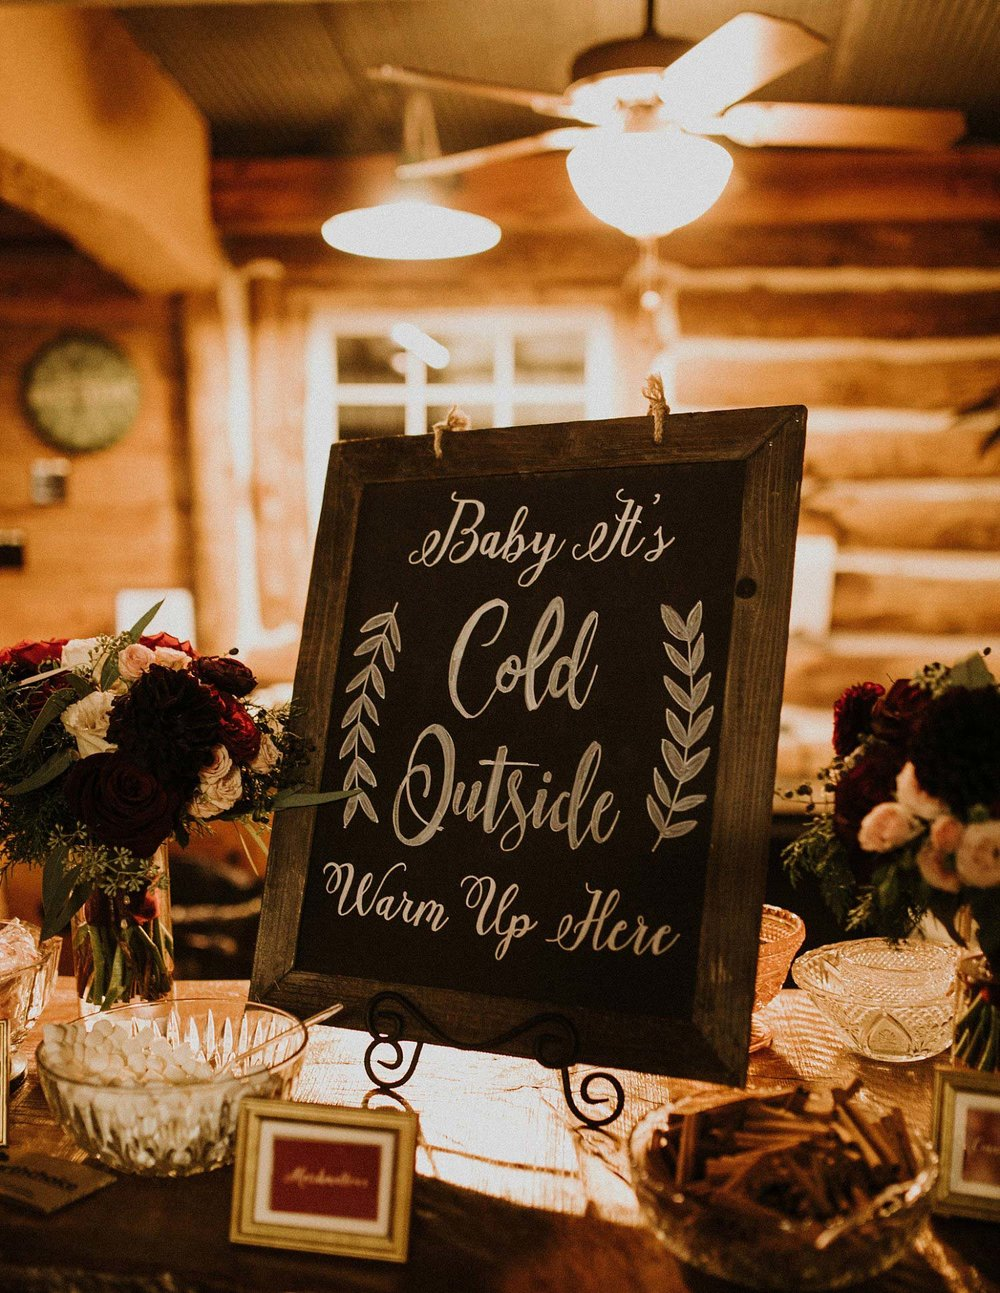 Hollow Hill Farm Event Center Wedding coffee bar chalkboard signage with wood frame